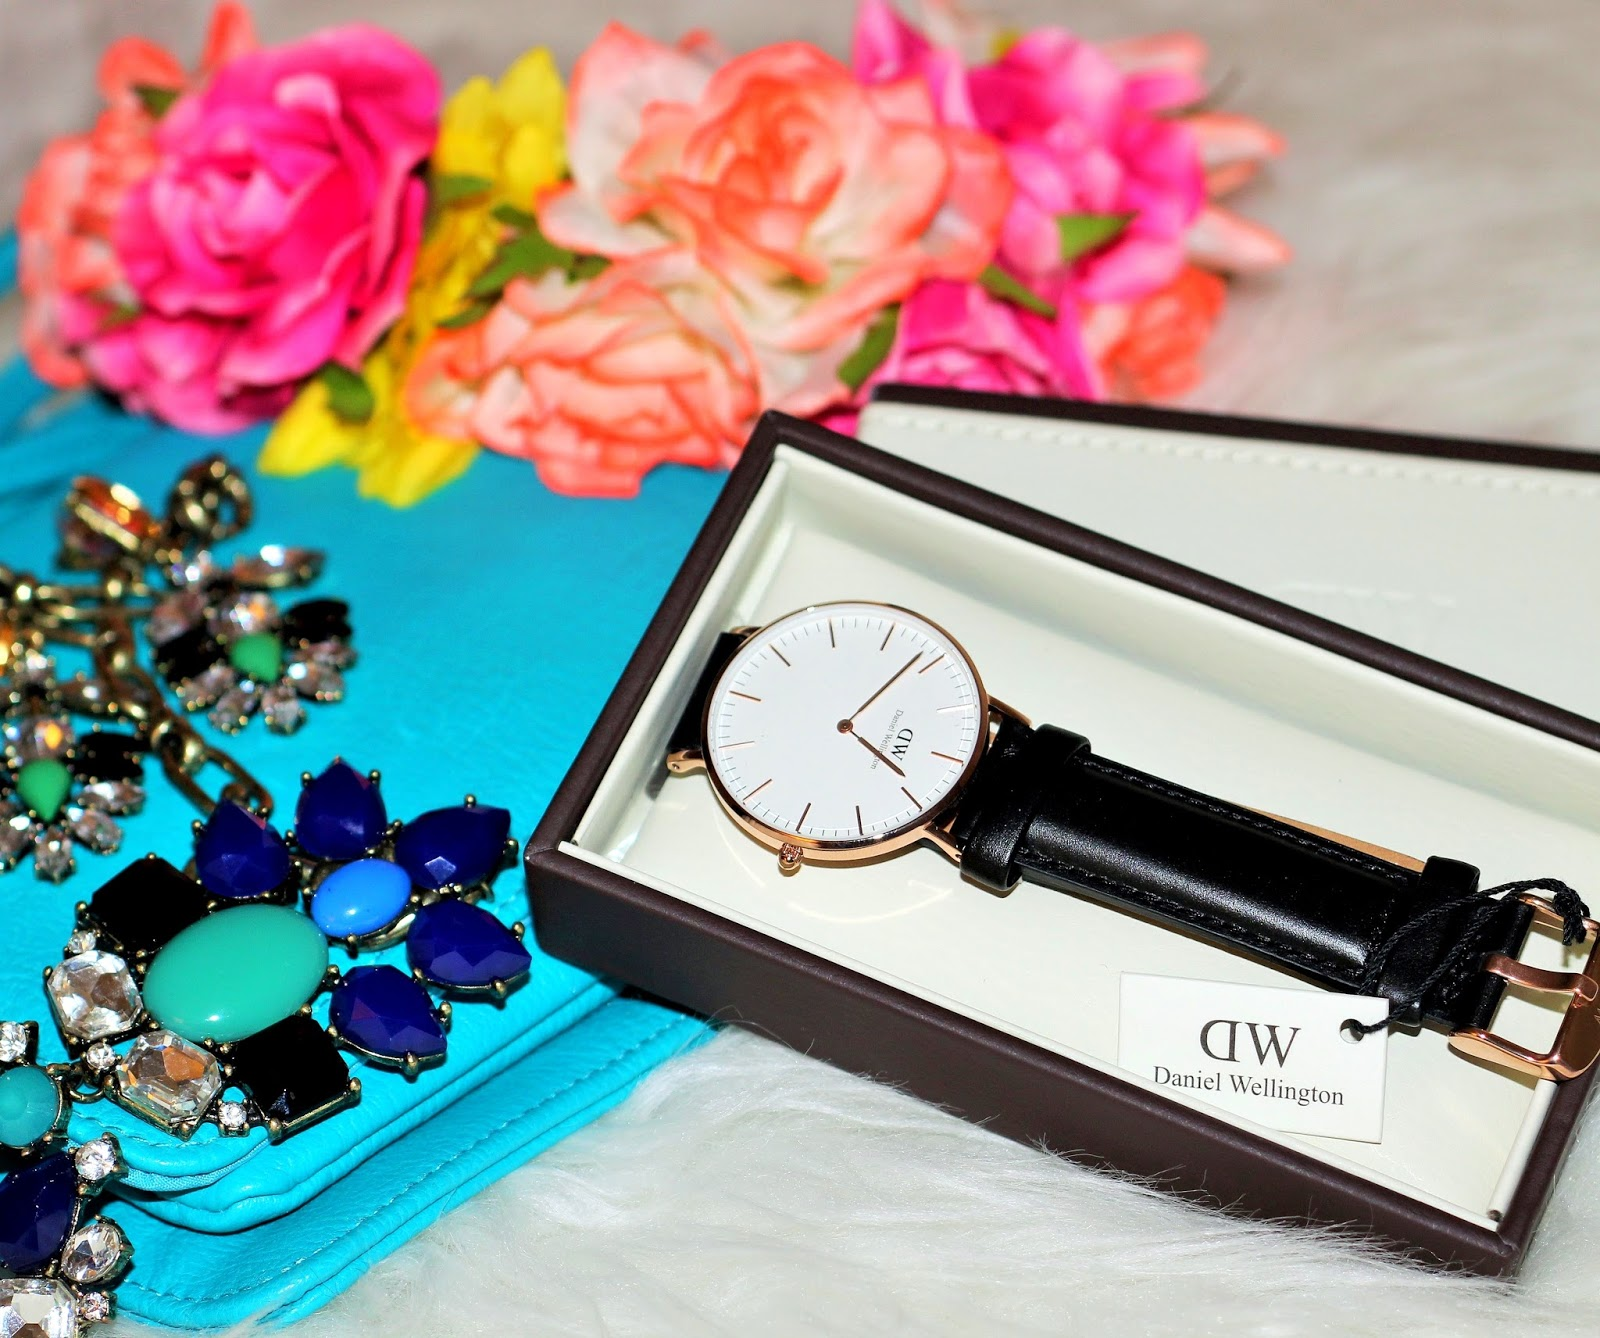 Tmeless Style With Classic Sheffield Lady Watch (in Rose Gold) By Daniel Wellington